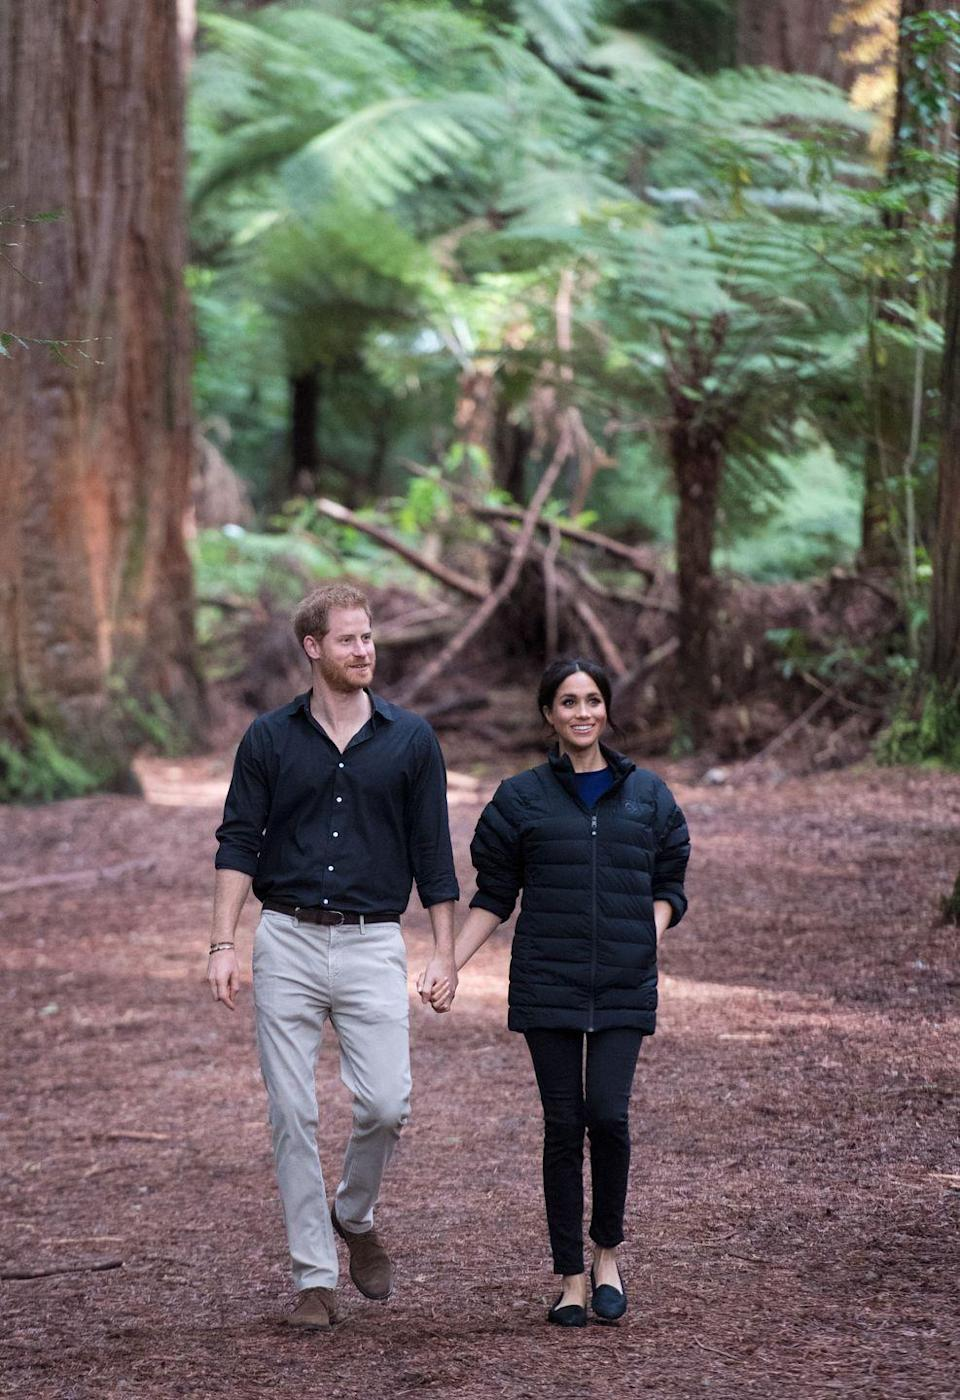 <p>The Duchess of Sussex bundled up in Prince Harry's waterproof jacket during their visit of the Redwoods Forest at Rotorua, New Zealand. </p>